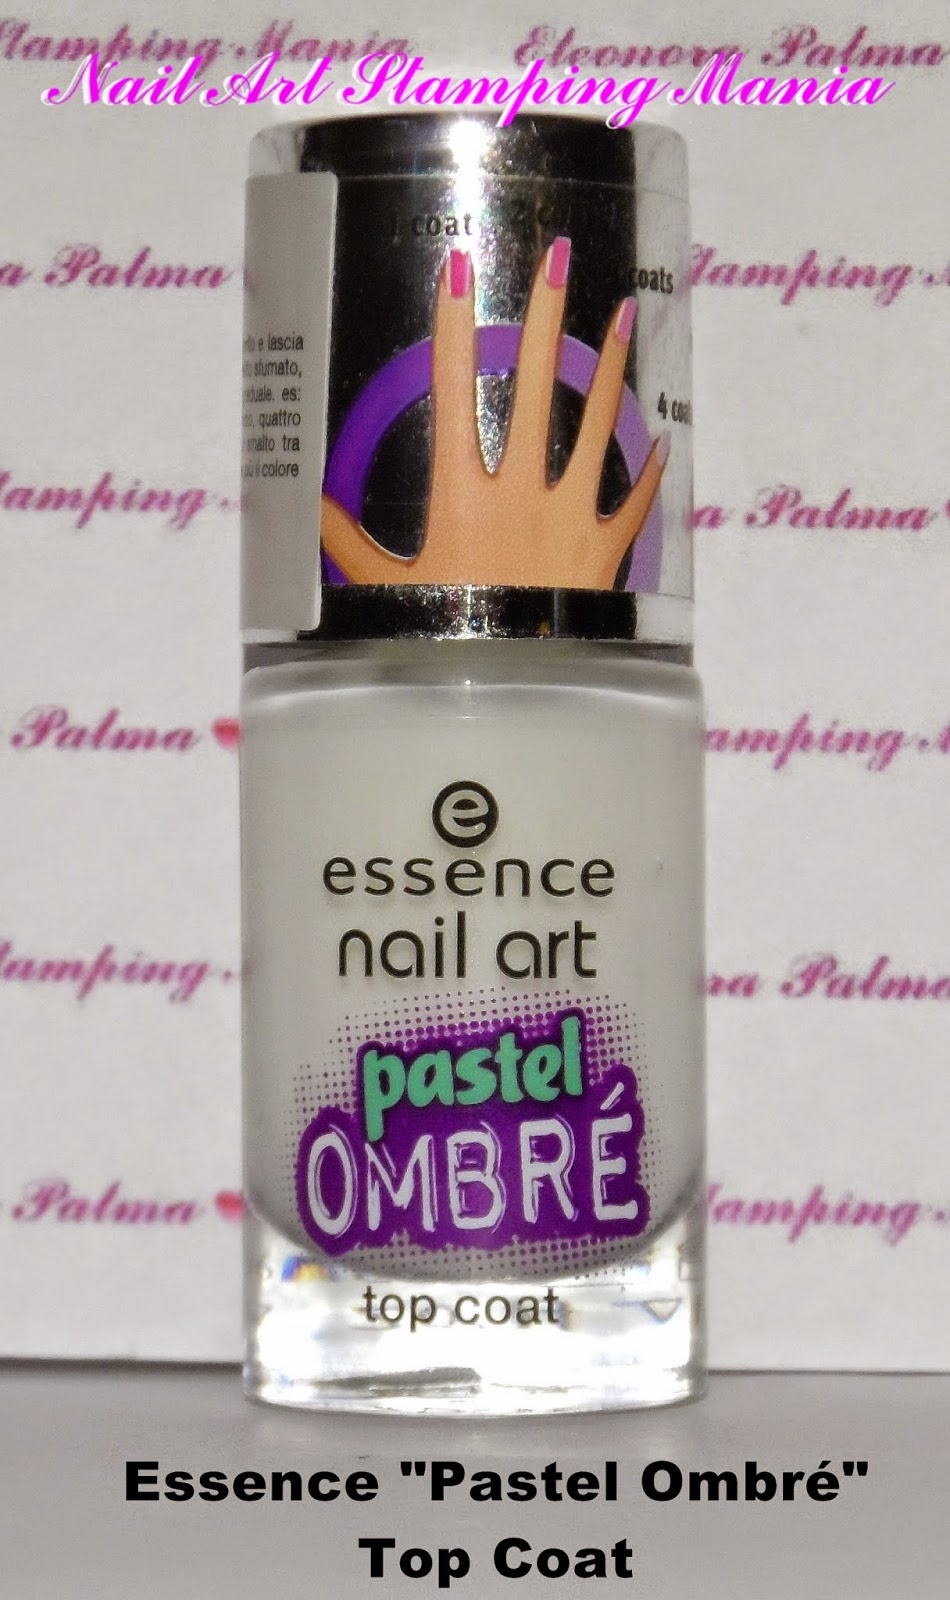 Nail art stamping mania essence pastel ombr swatches and review today i would like to review one of the new essence nail products its about essence pastel ombr top coat it can be used with any kind of nail polishes prinsesfo Choice Image